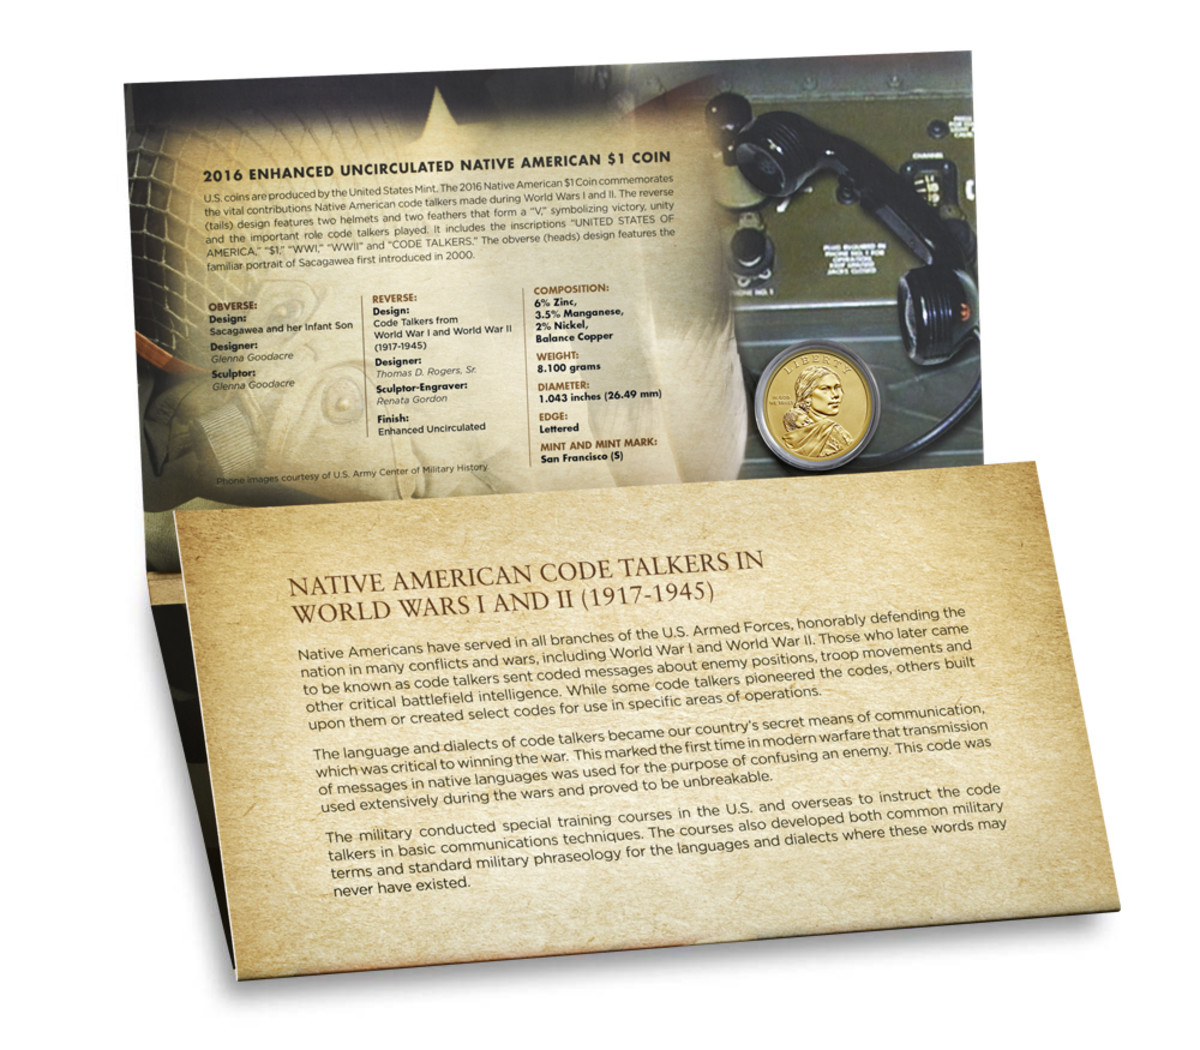 Historical information on World War 1 and 2 Code Talkers is also included on the set.